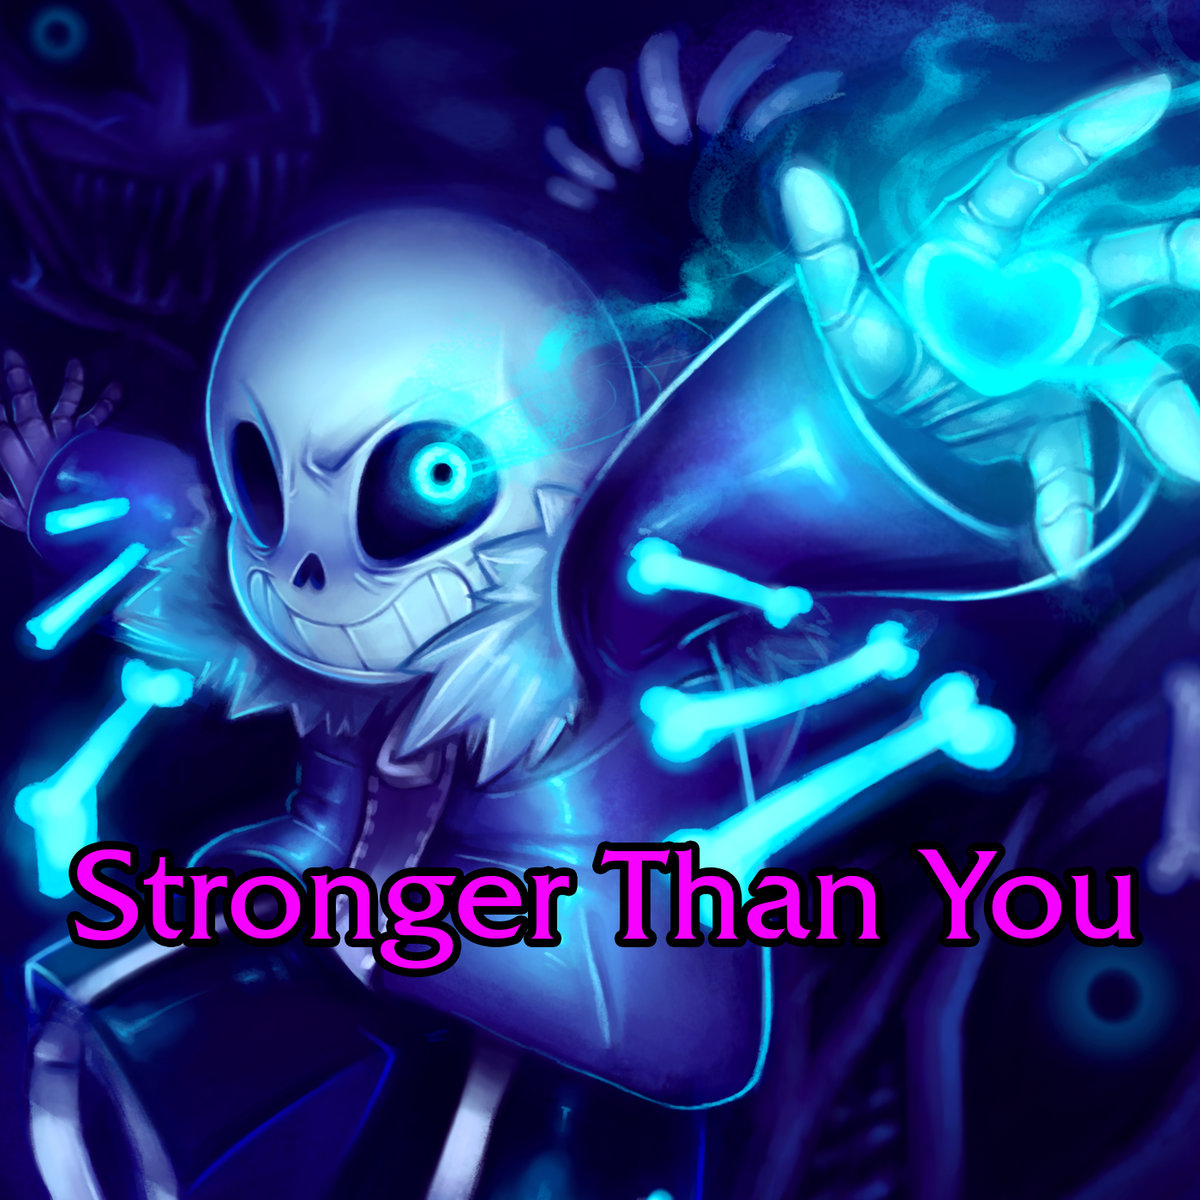 stronger than you chara mp3 download